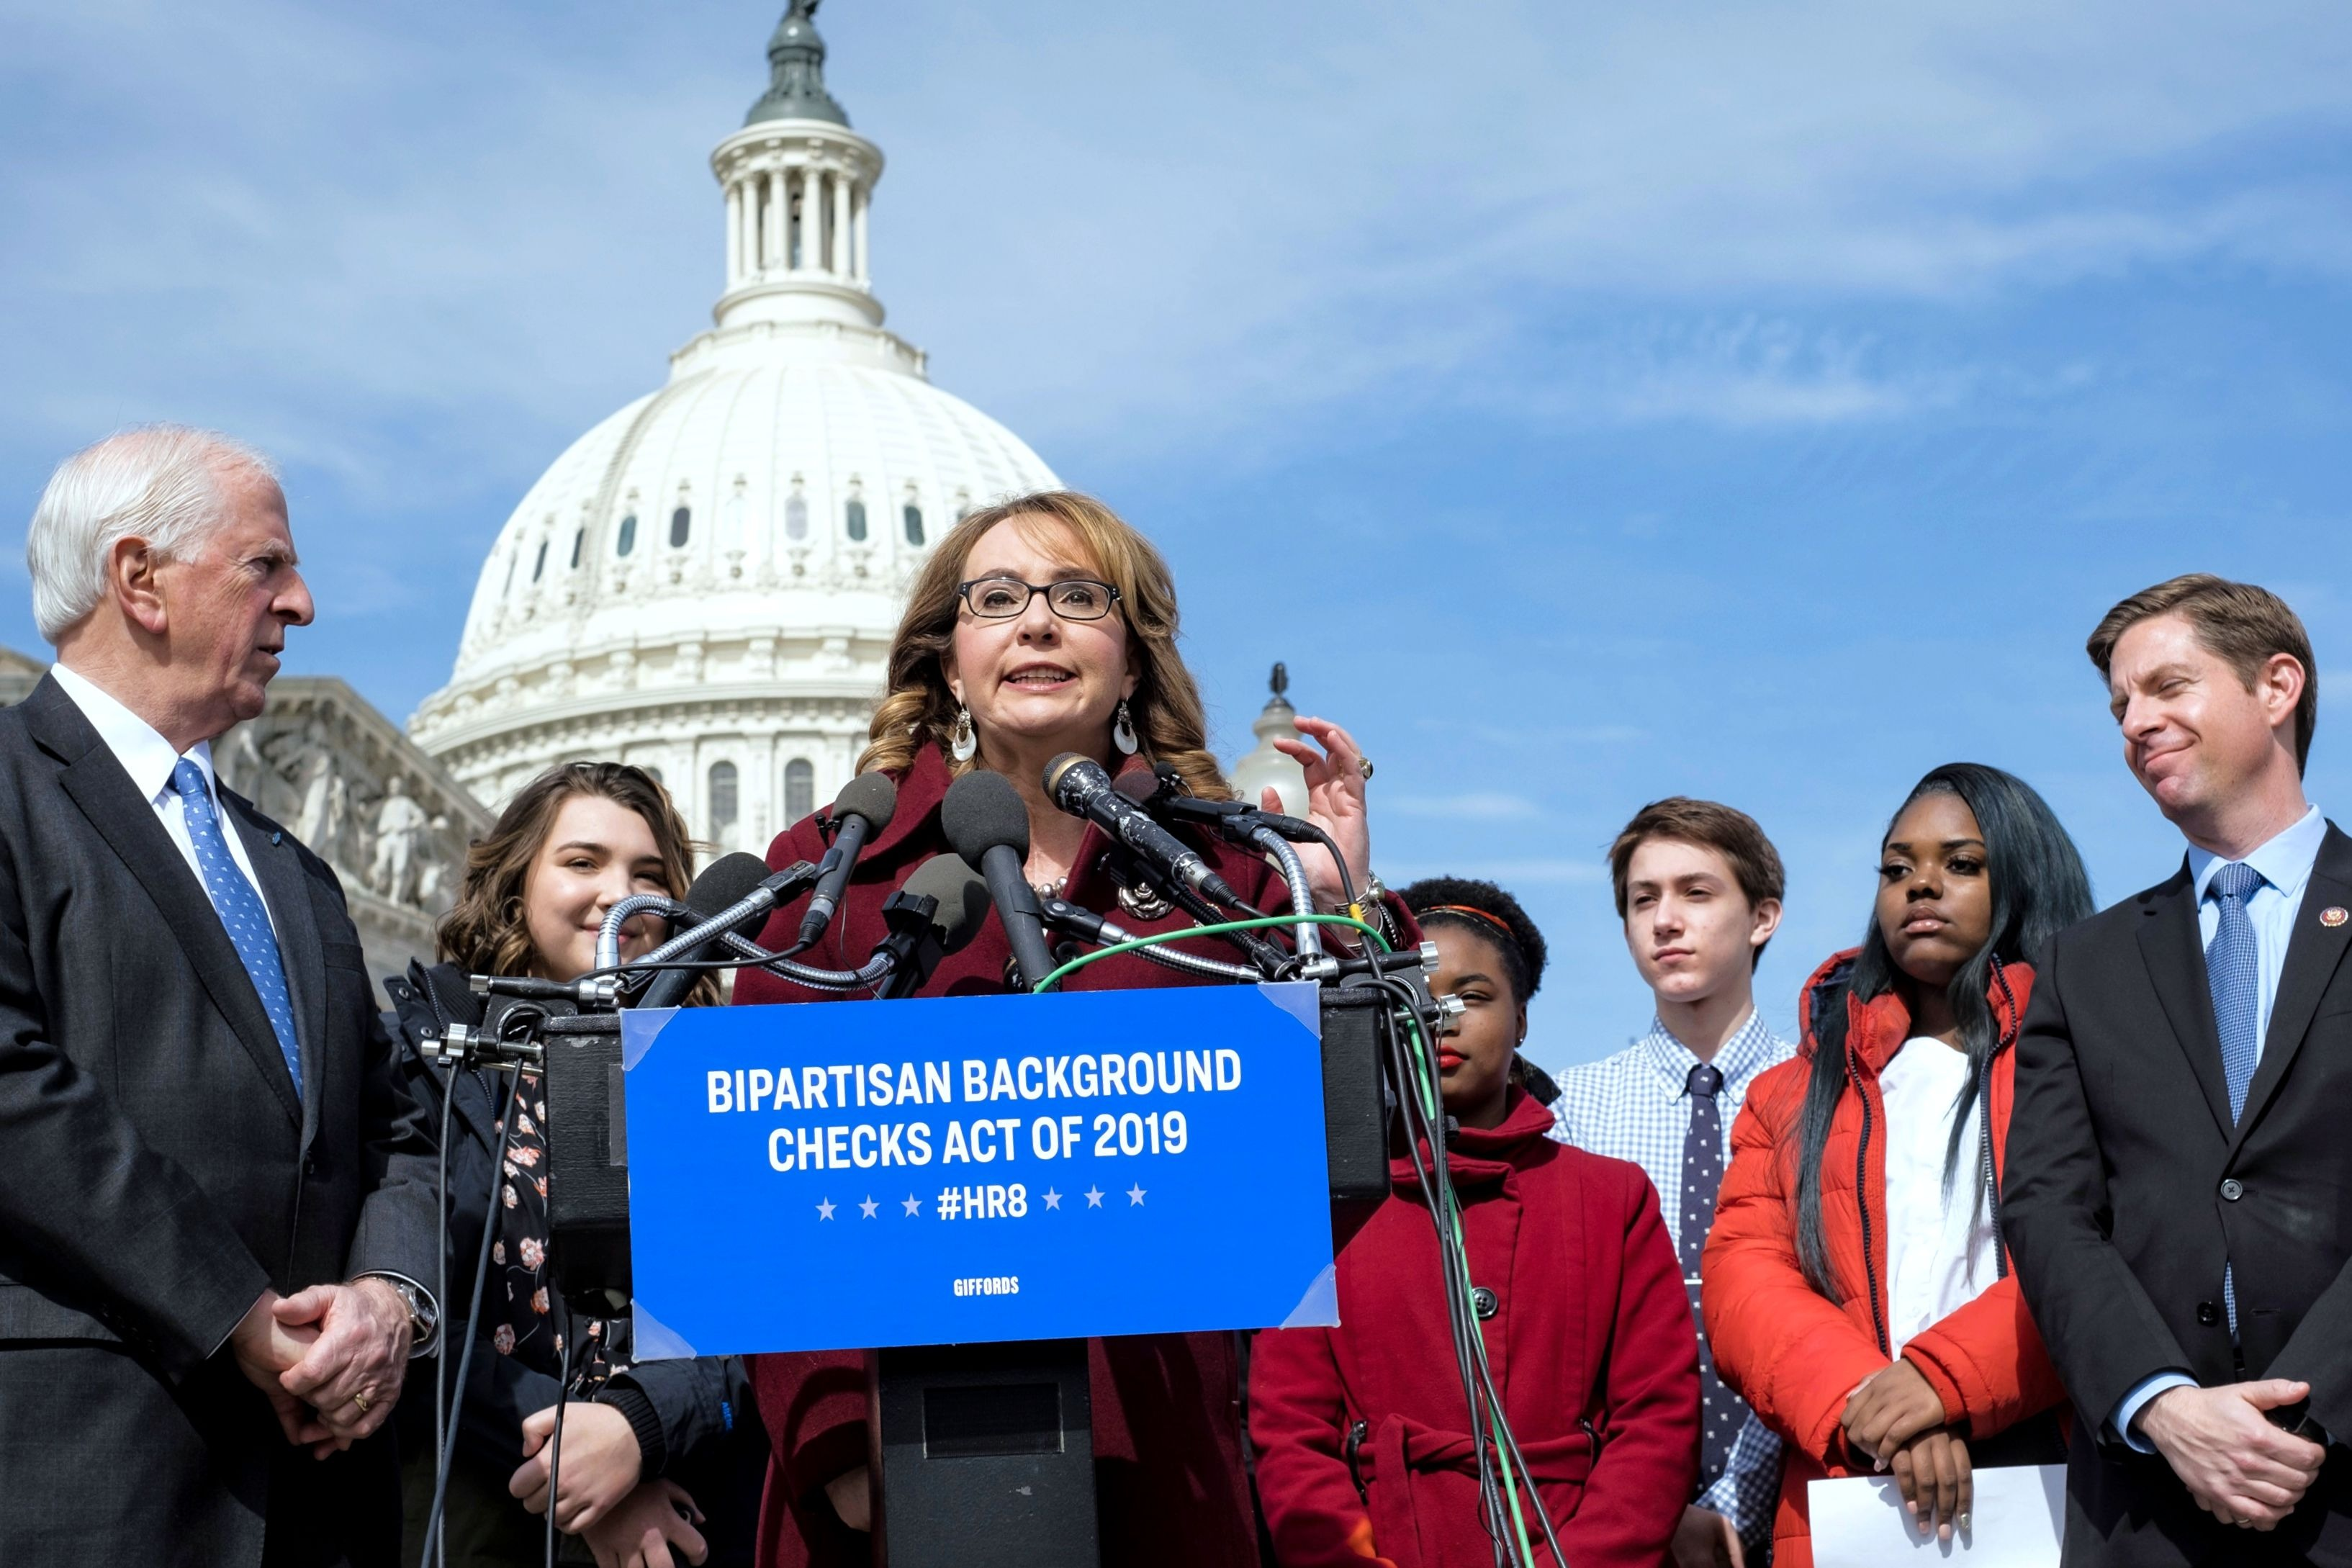 On Tuesday, February 26, former Rep. Gabrielle Giffords, lawmakers, and student leaders from across the country called on Congress to pass the background checks legislation.